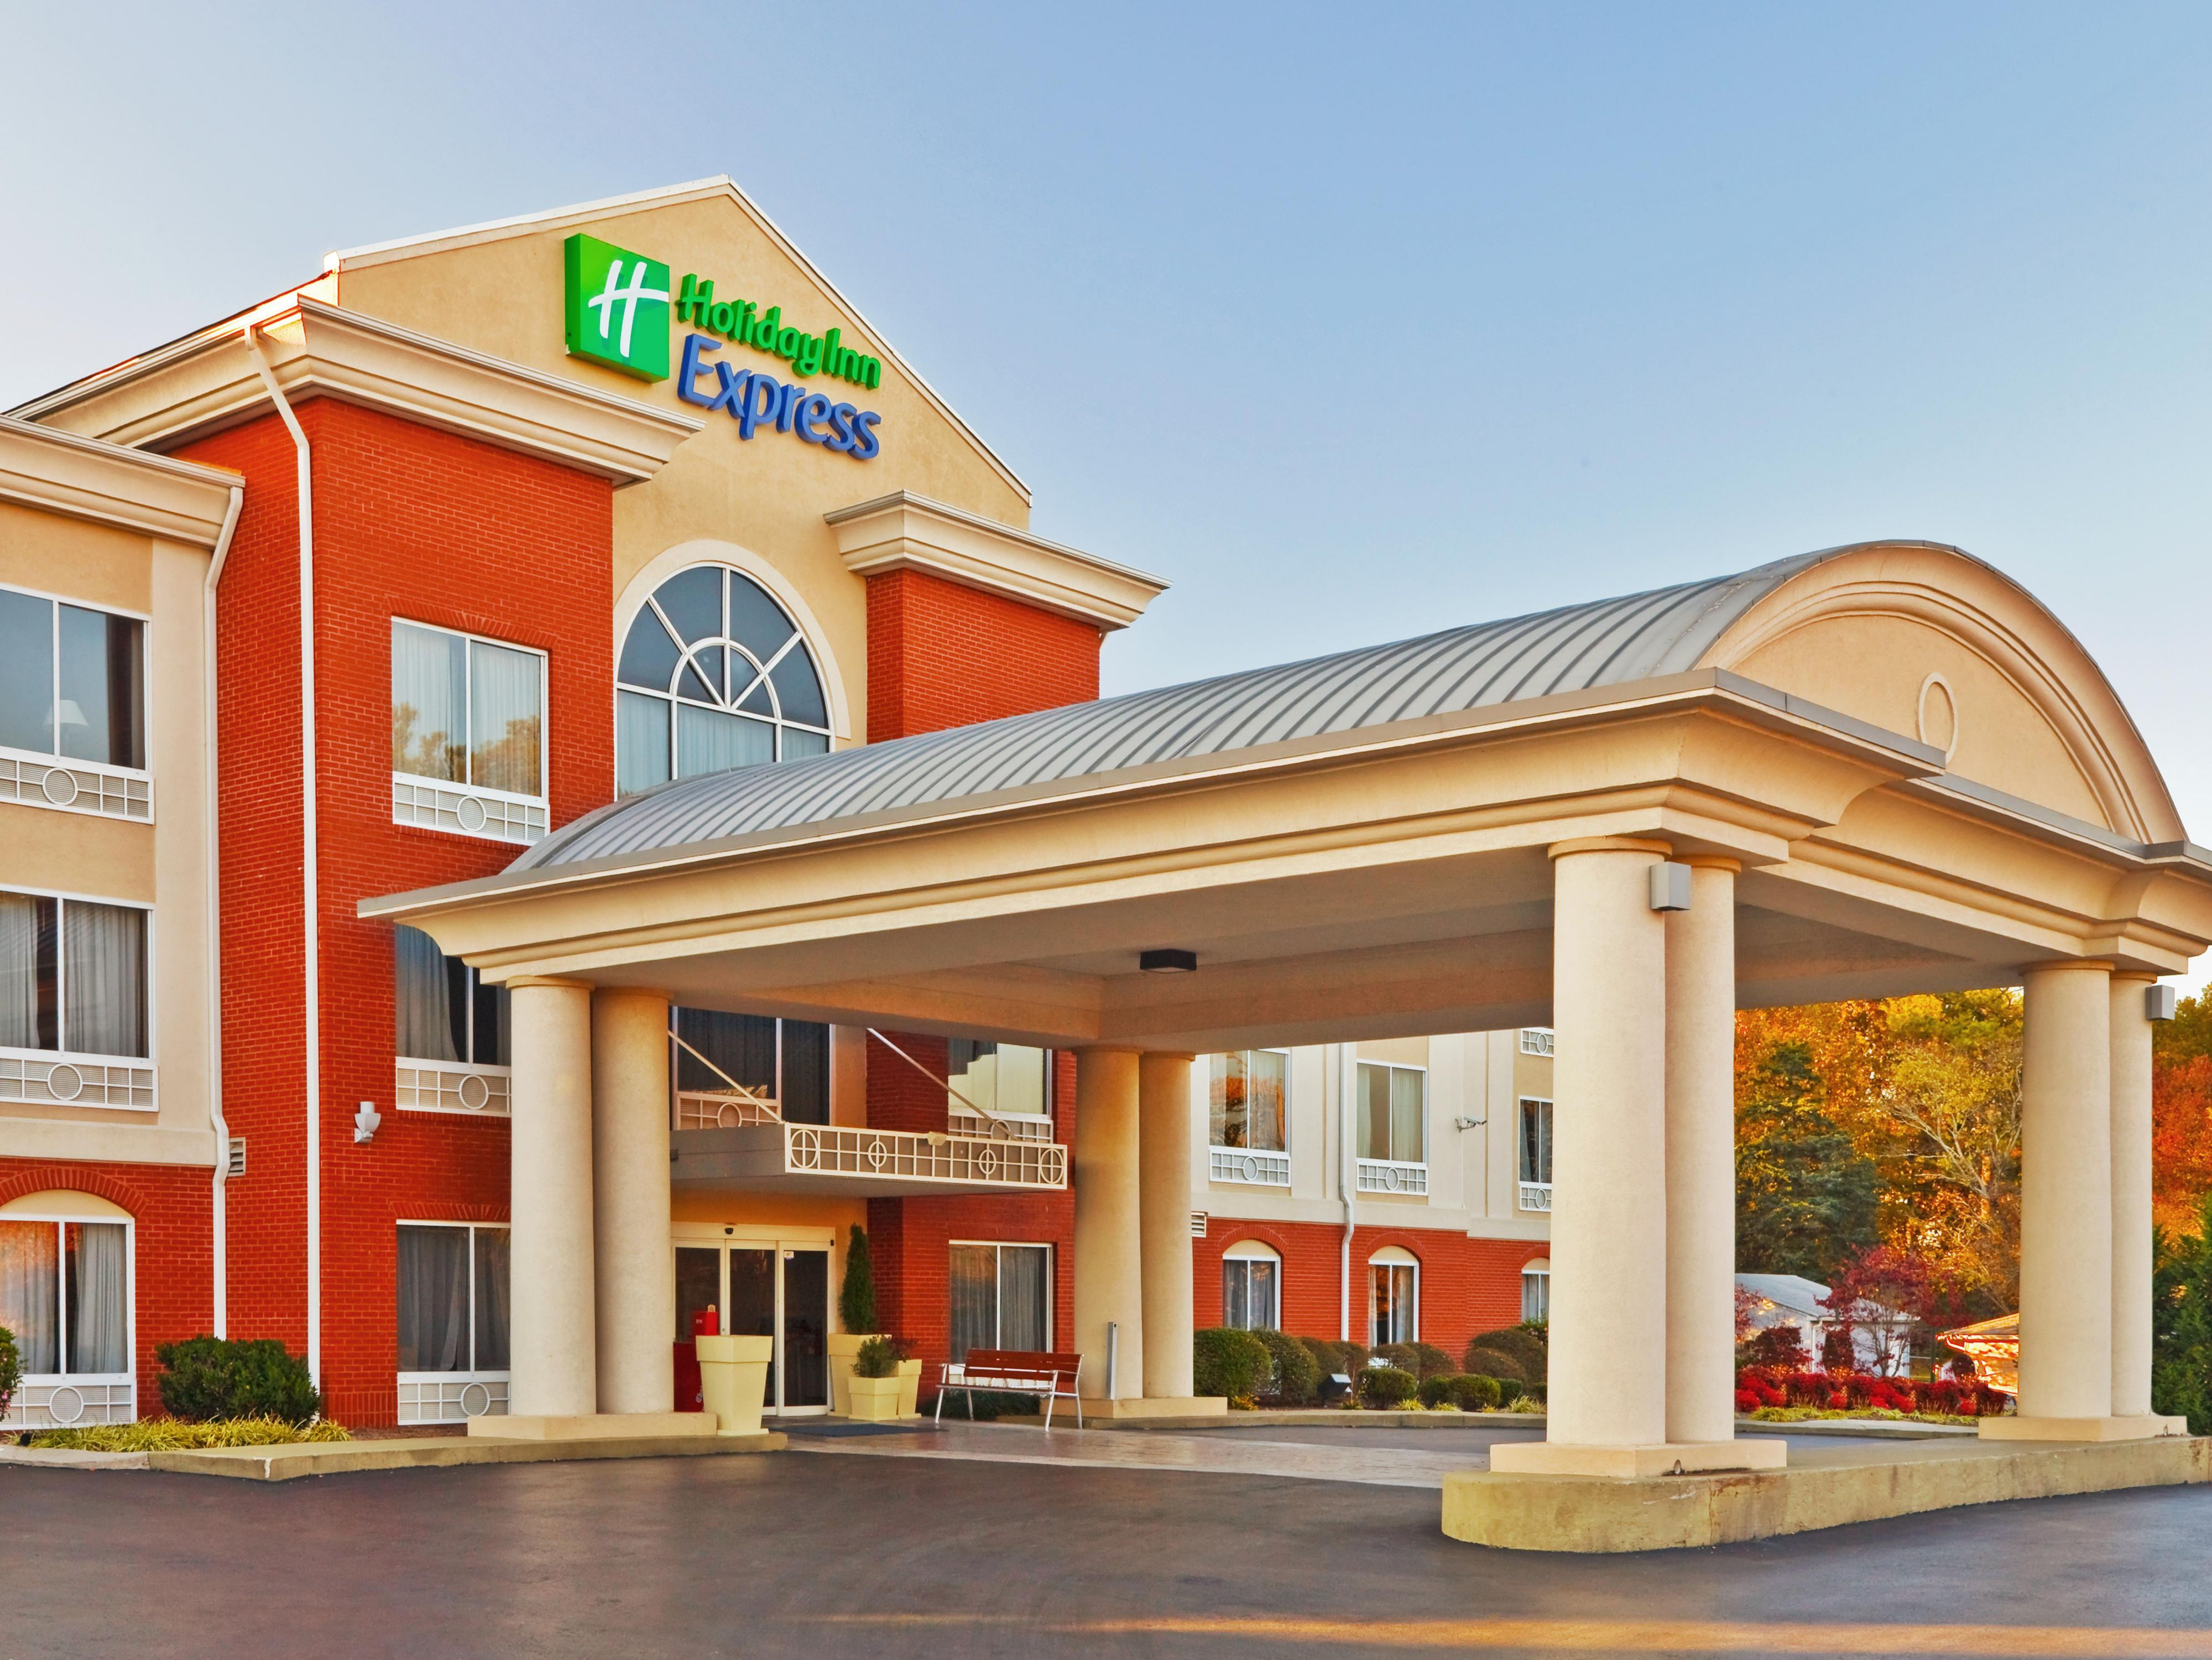 Welcome to the Holiday Inn Express Hotel & Suites East Ridge!